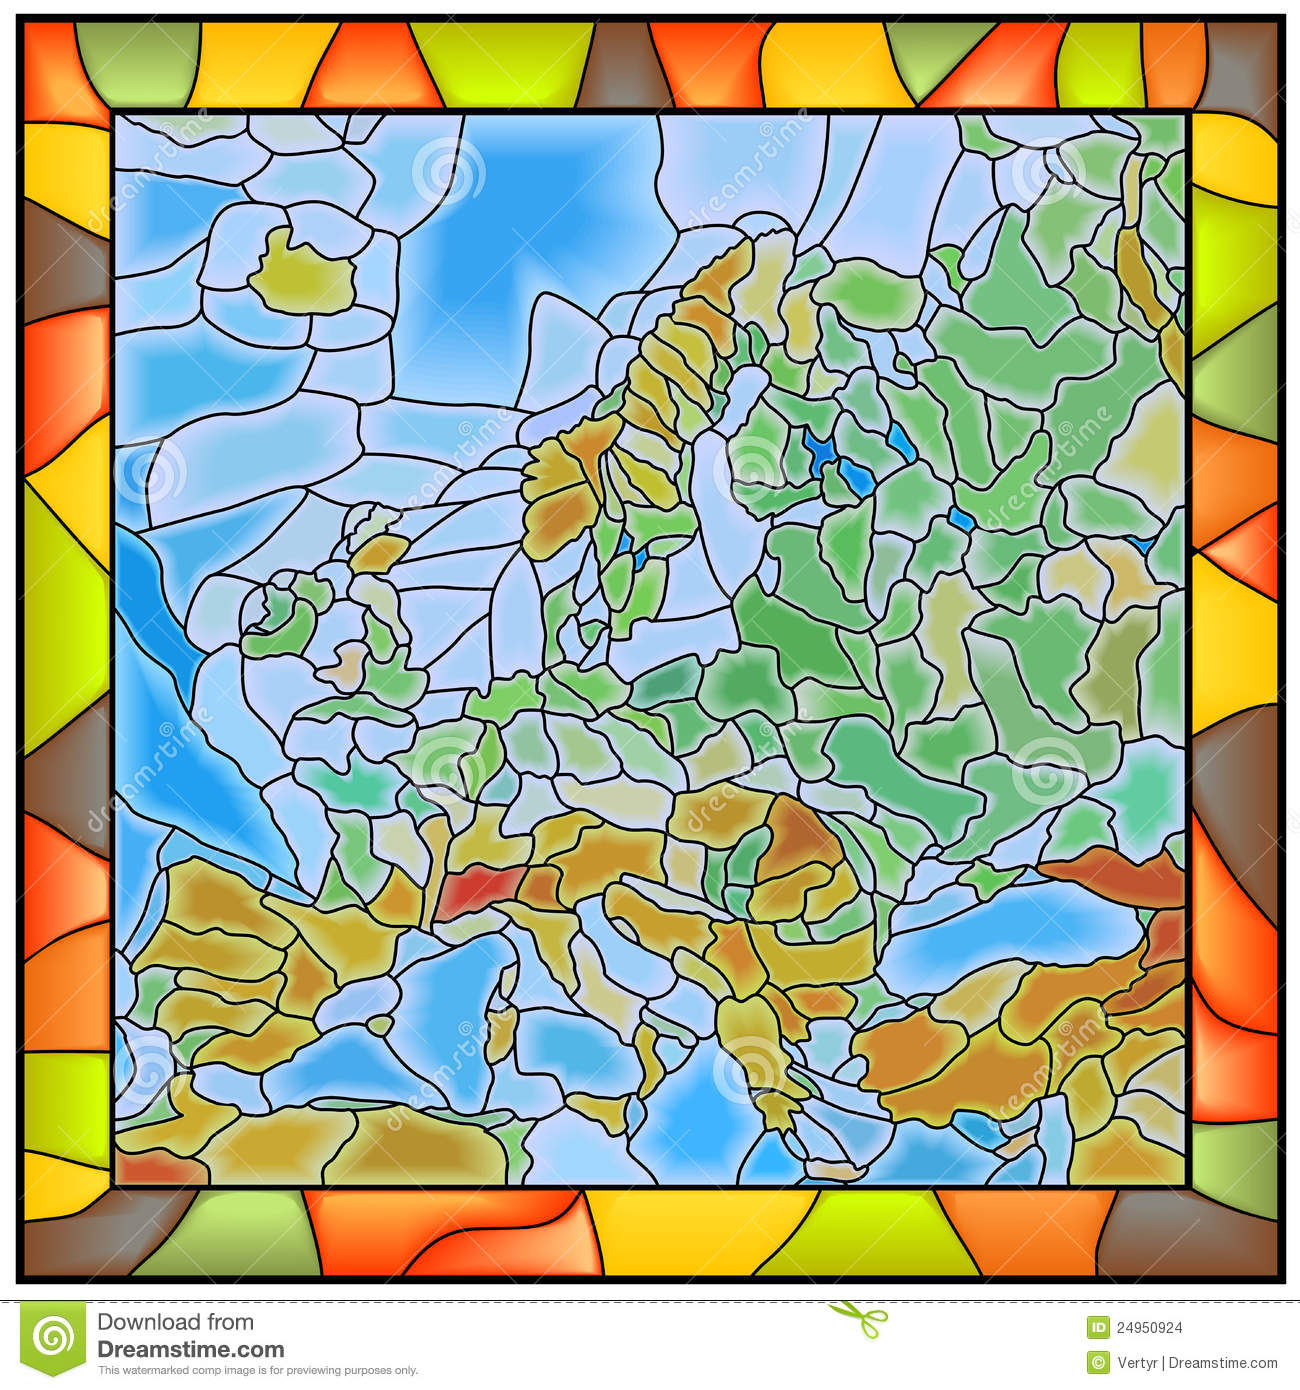 vector illustration of europe - photo #22